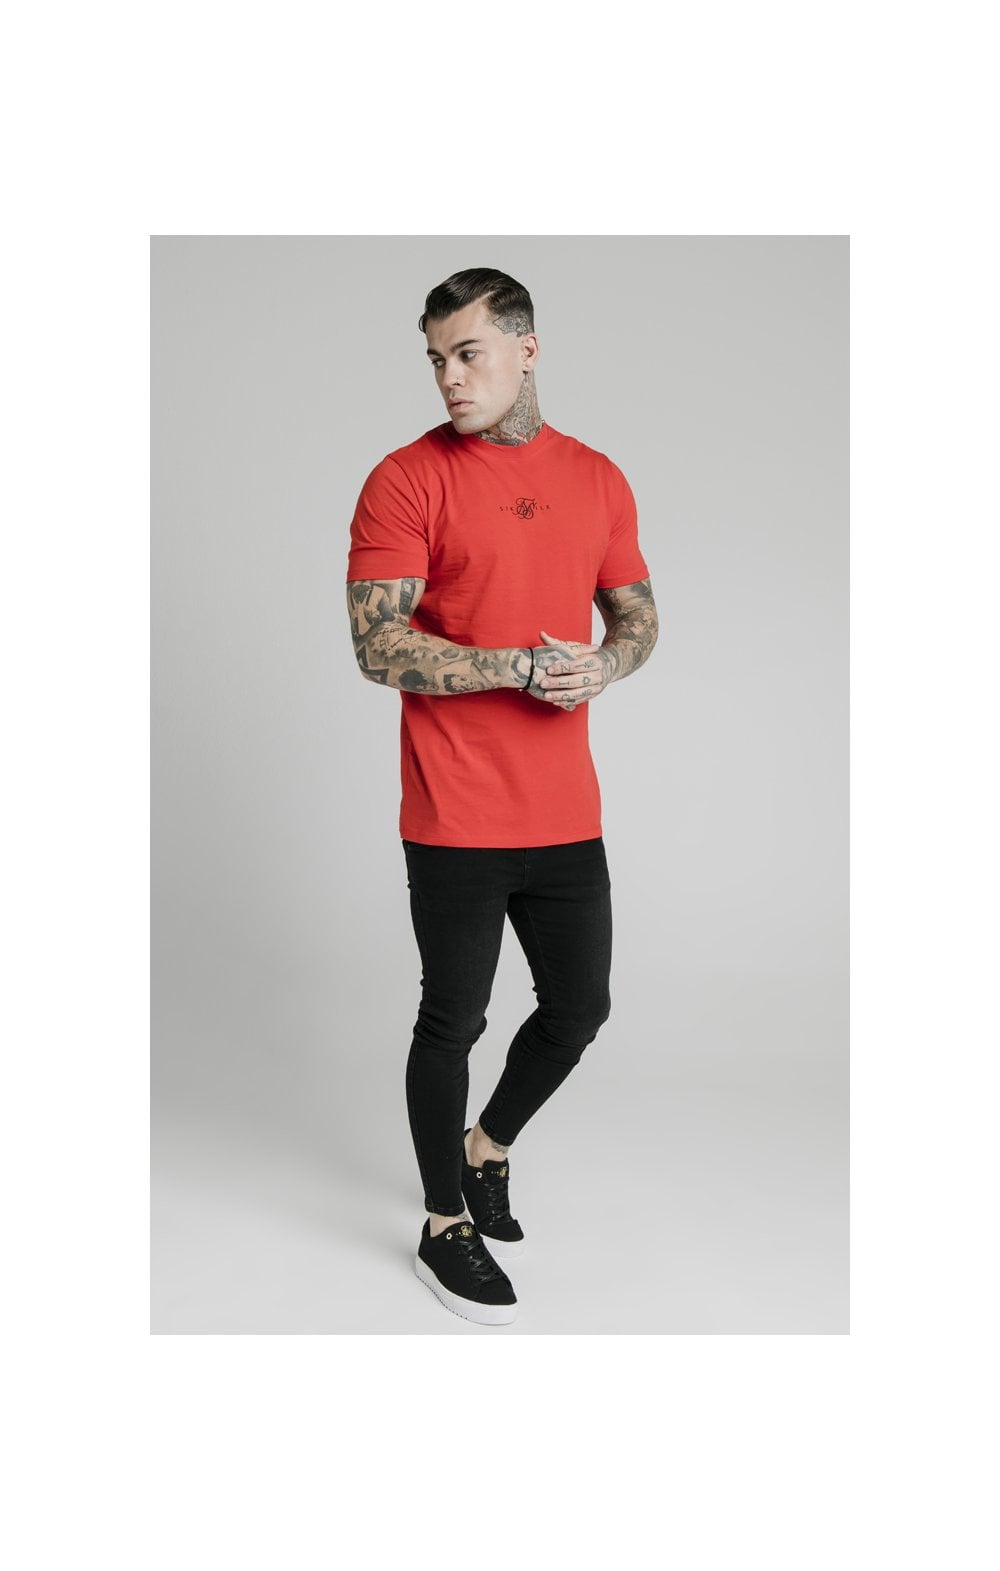 SikSilk S/S Square Hem Tee – Red (2)